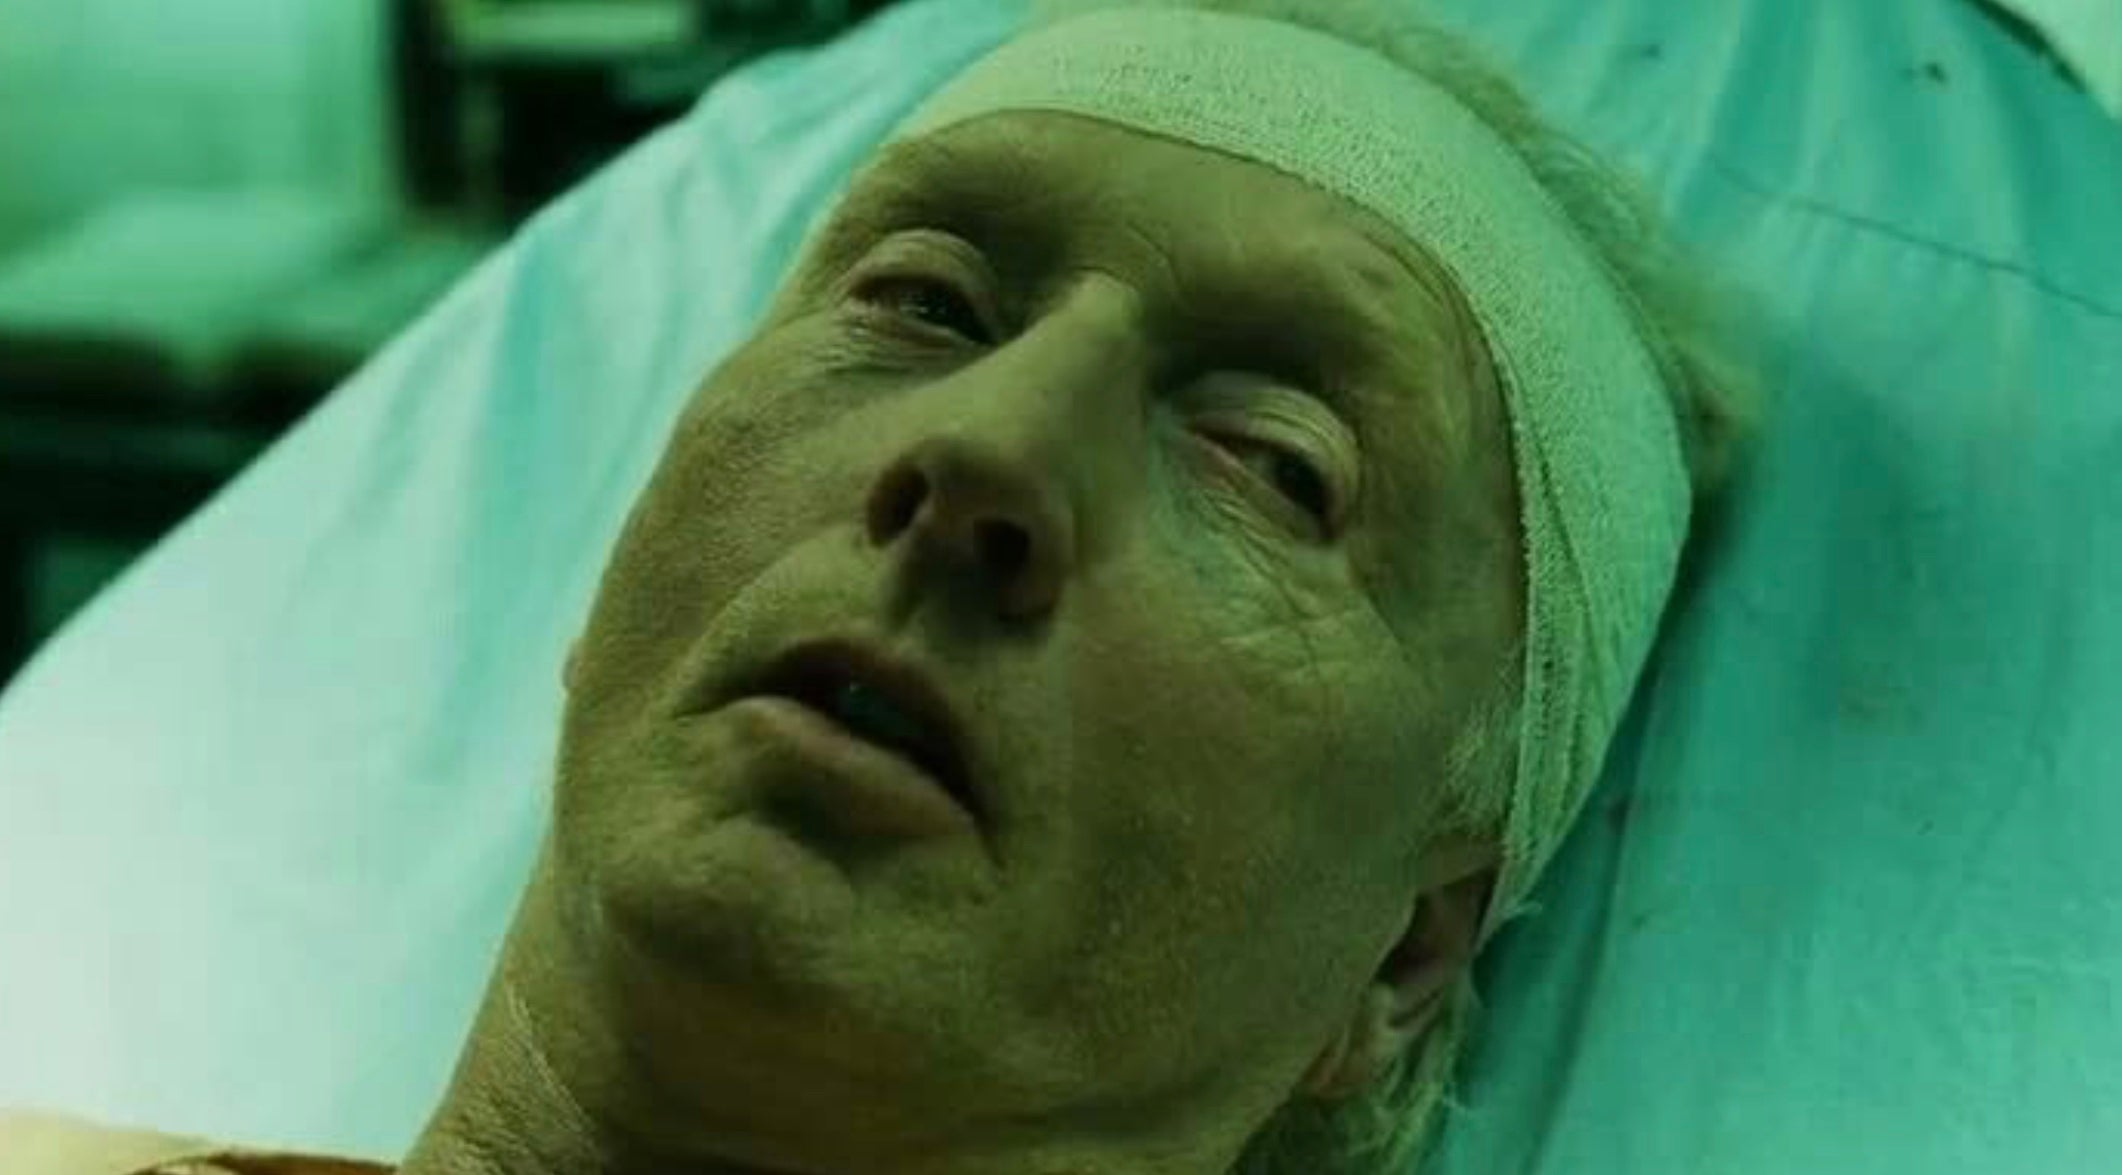 Saw III (2006) - Tobin Bell's Make-Up Sponge